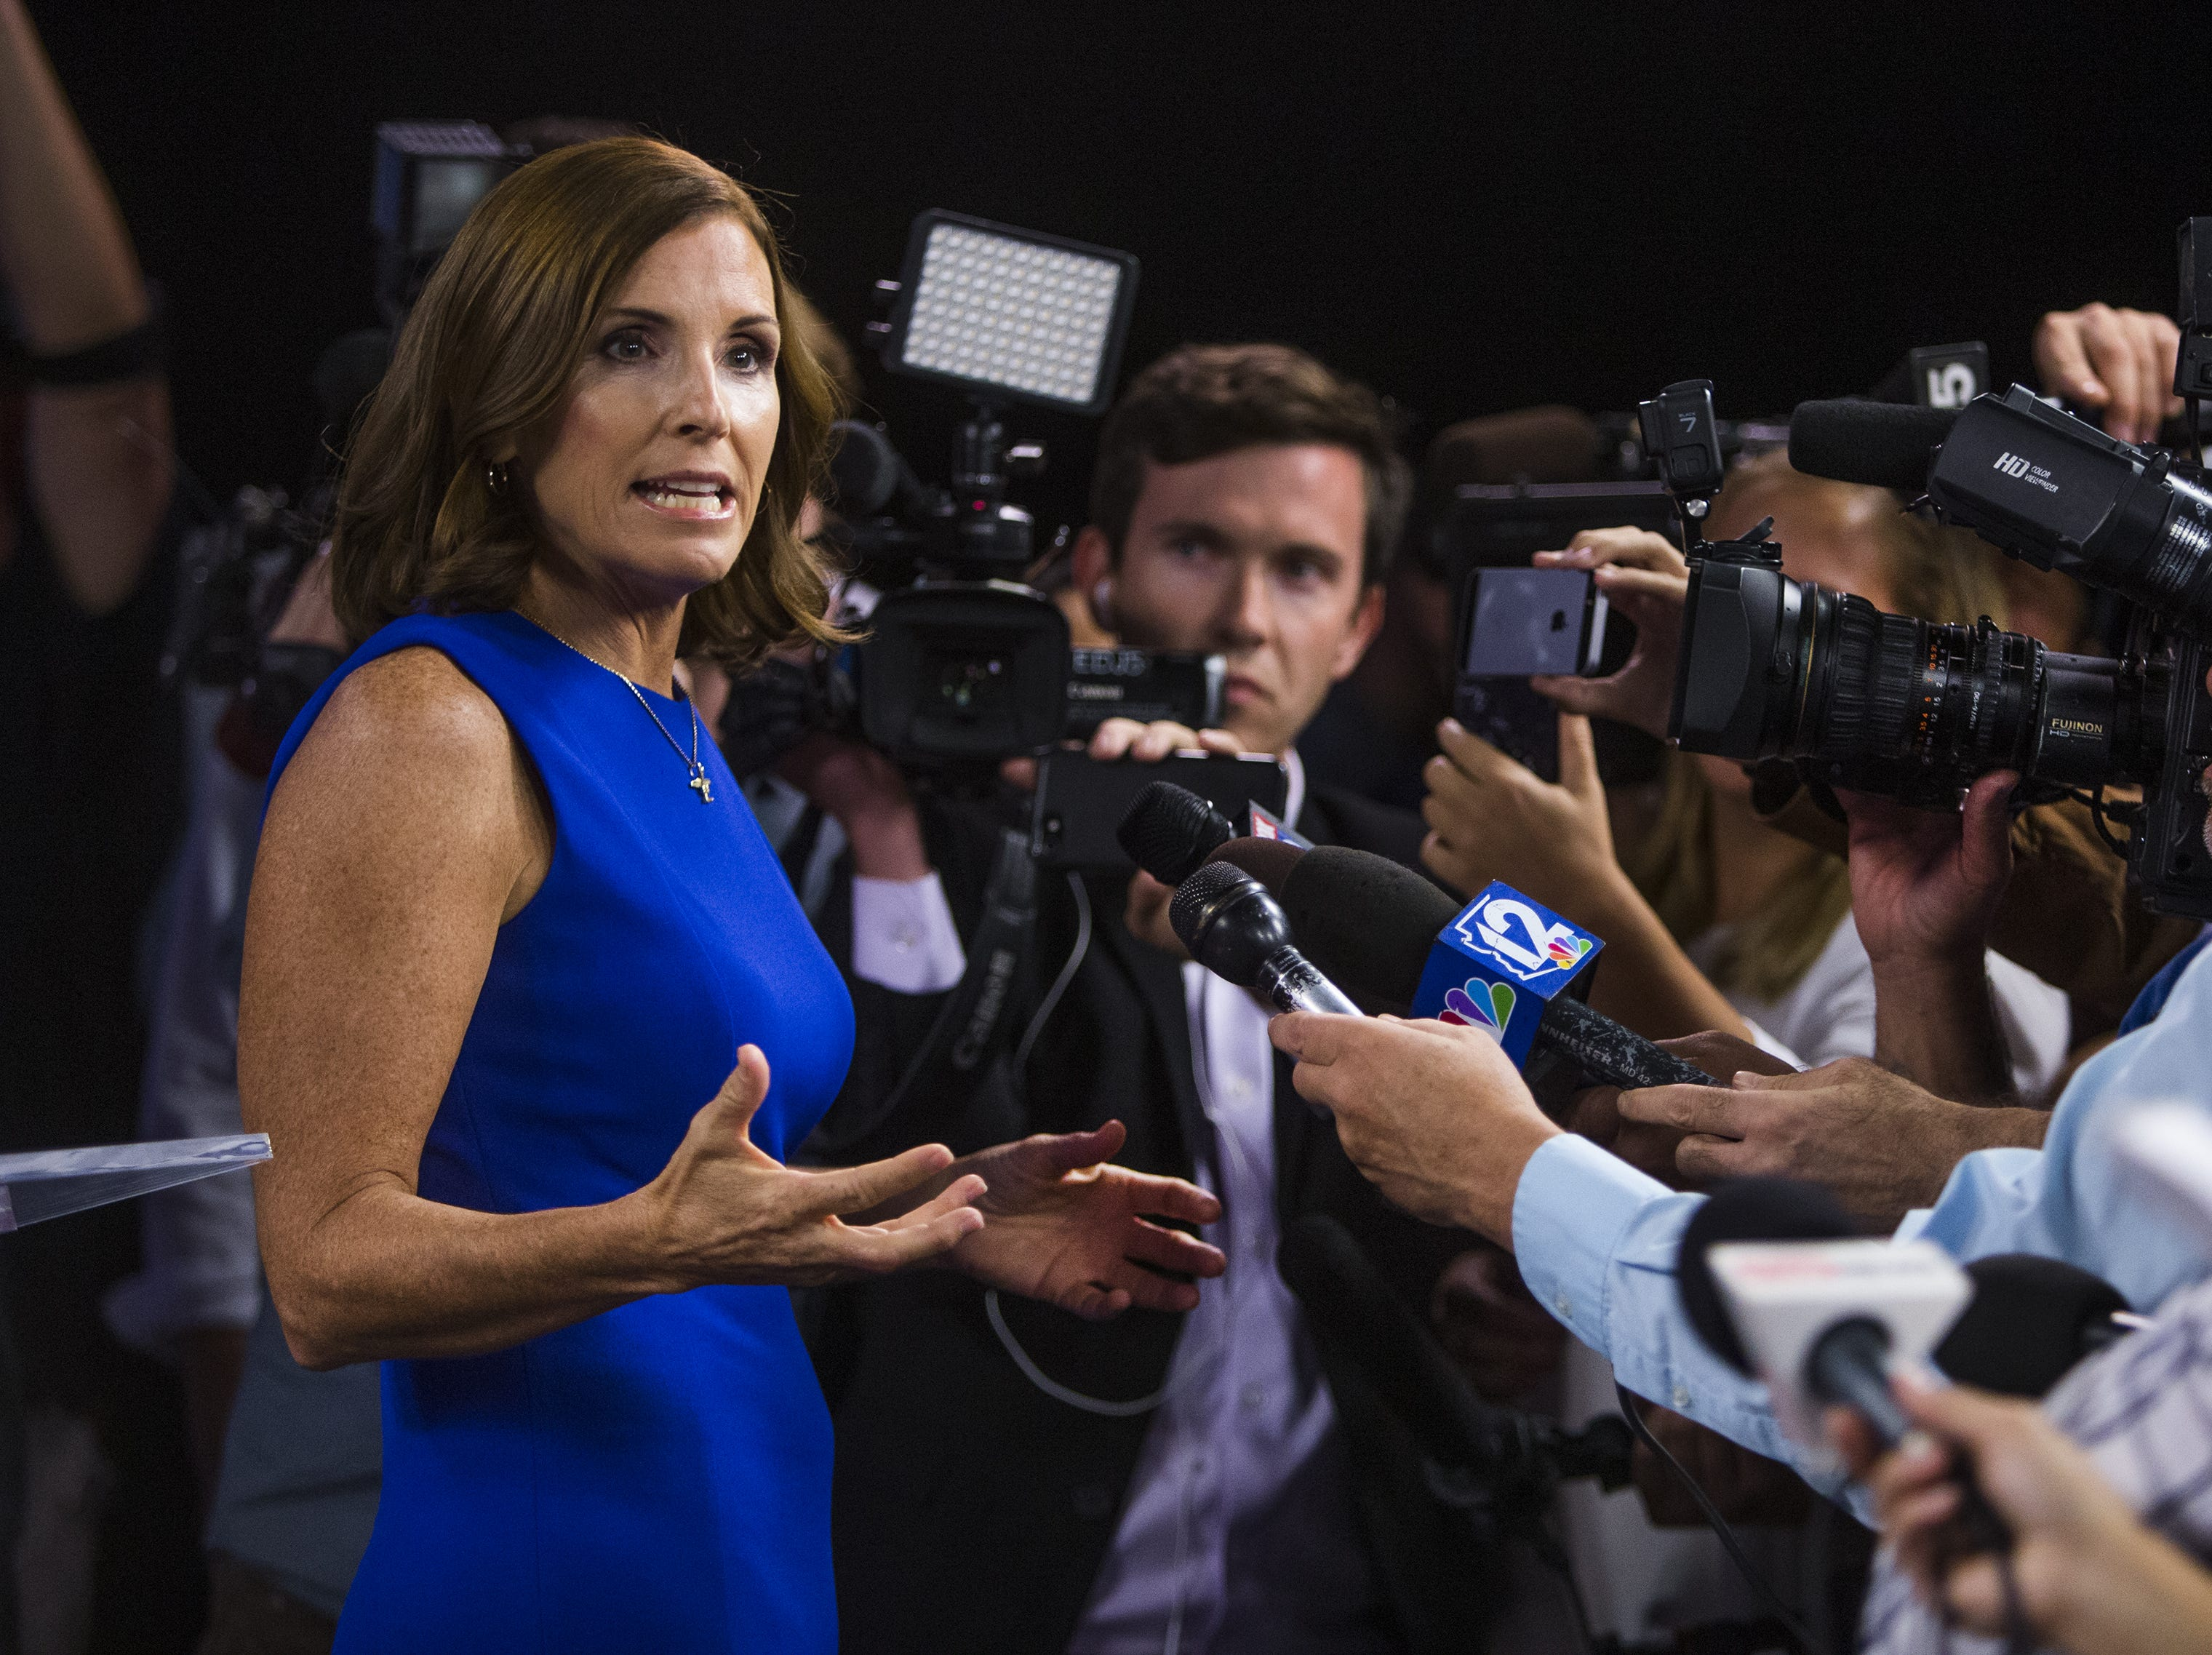 Rep. Martha McSally takes questions from the press after debating Rep. Kyrsten Sinema in the Arizona PBS studios at the Walter Cronkite School of Journalism and Mass Communication at Arizona State University in Phoenix on Oct. 15, 2018.